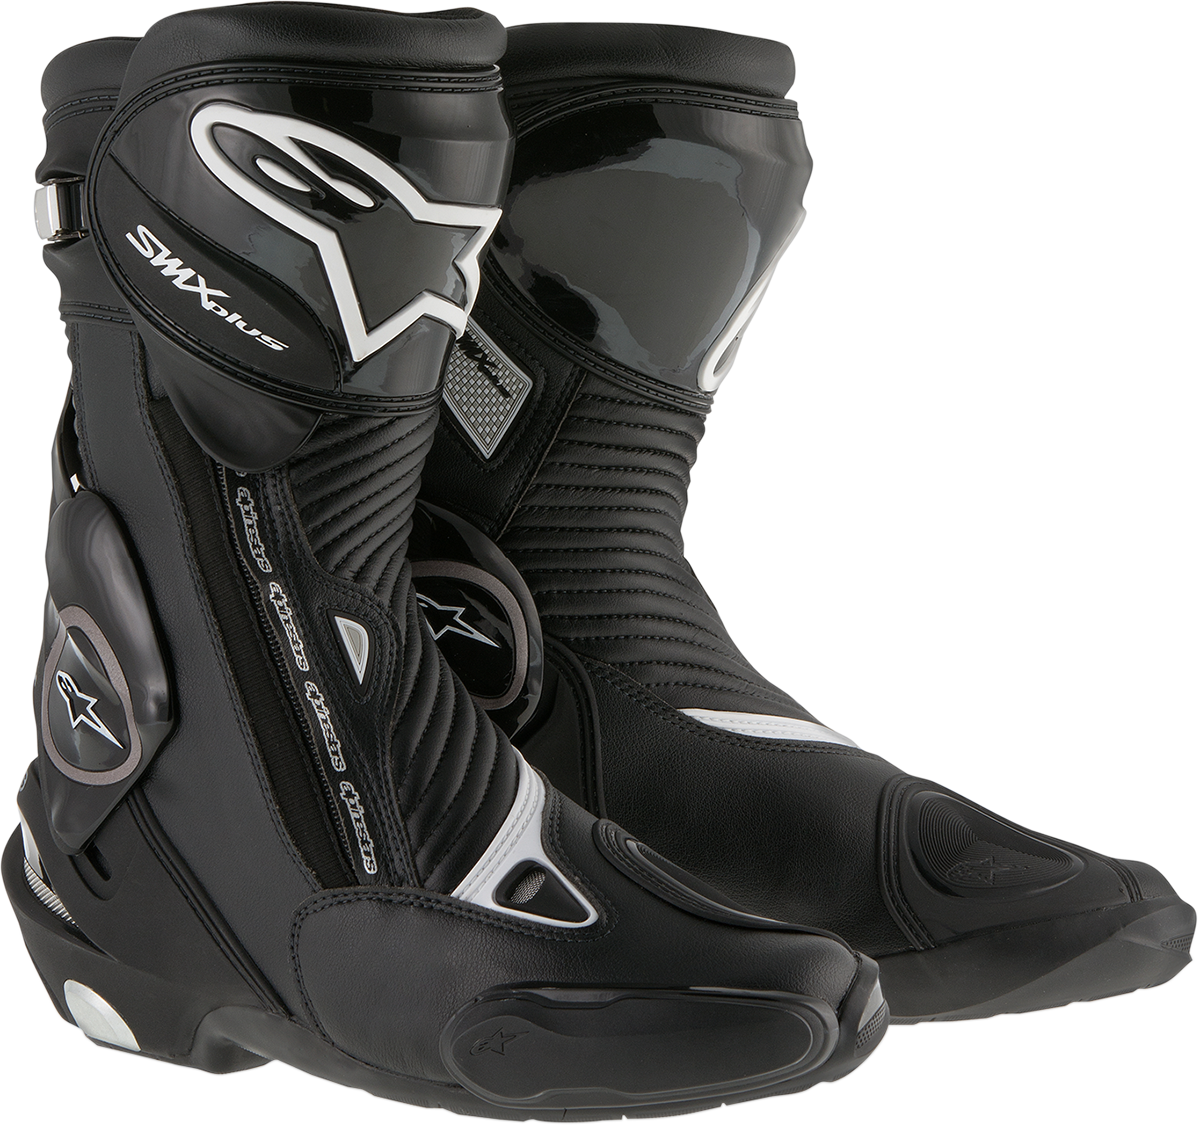 Alpinestars Mens SMX Plus Textile Motorcycle Riding Street Road Racing Boots